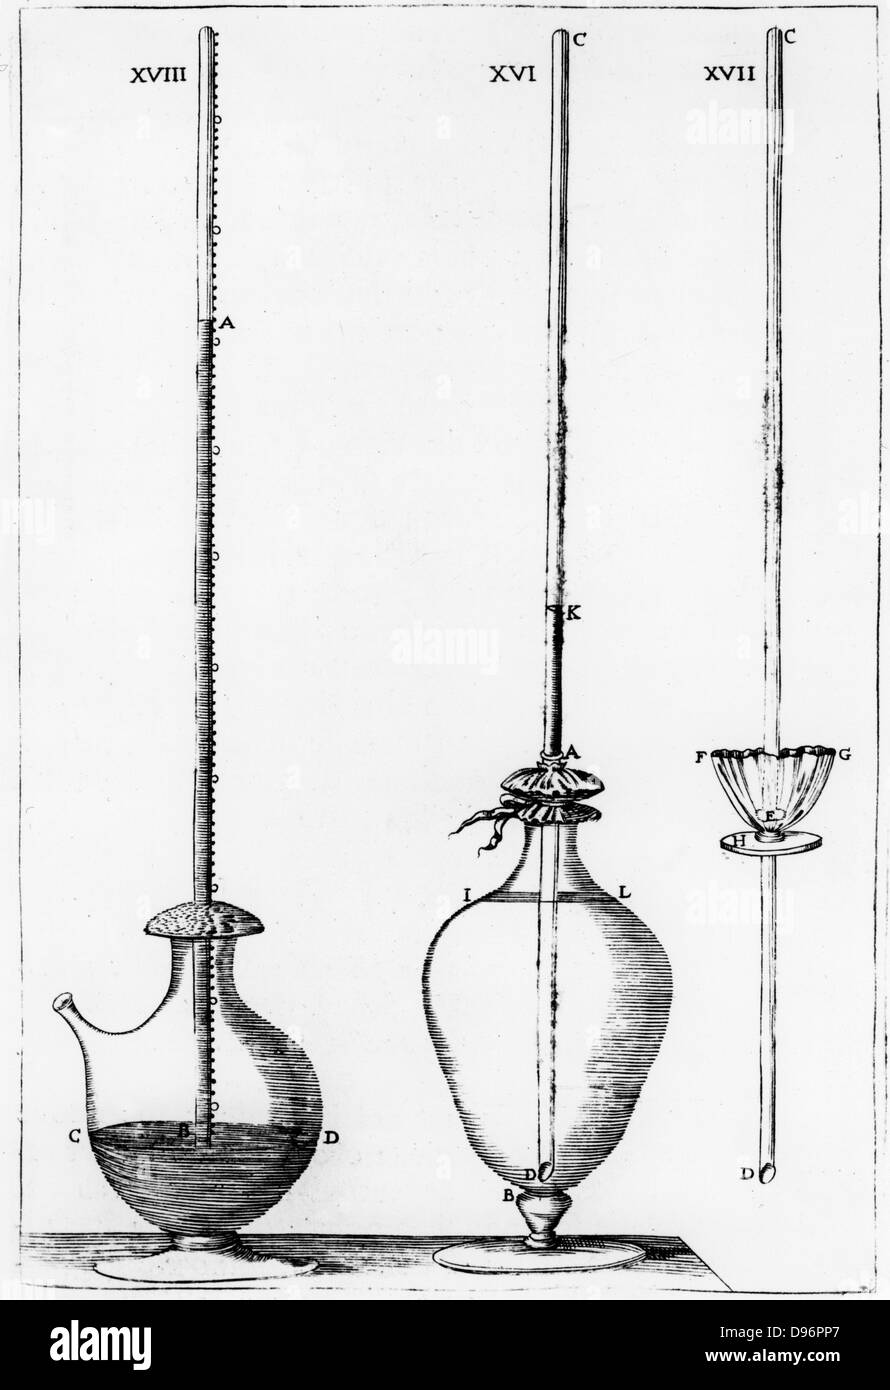 Experimental barometers used by the Accademia dell Cimento.  Fig. XVIII is a mercury barometer. From 'Saggi de naturali Stock Photo